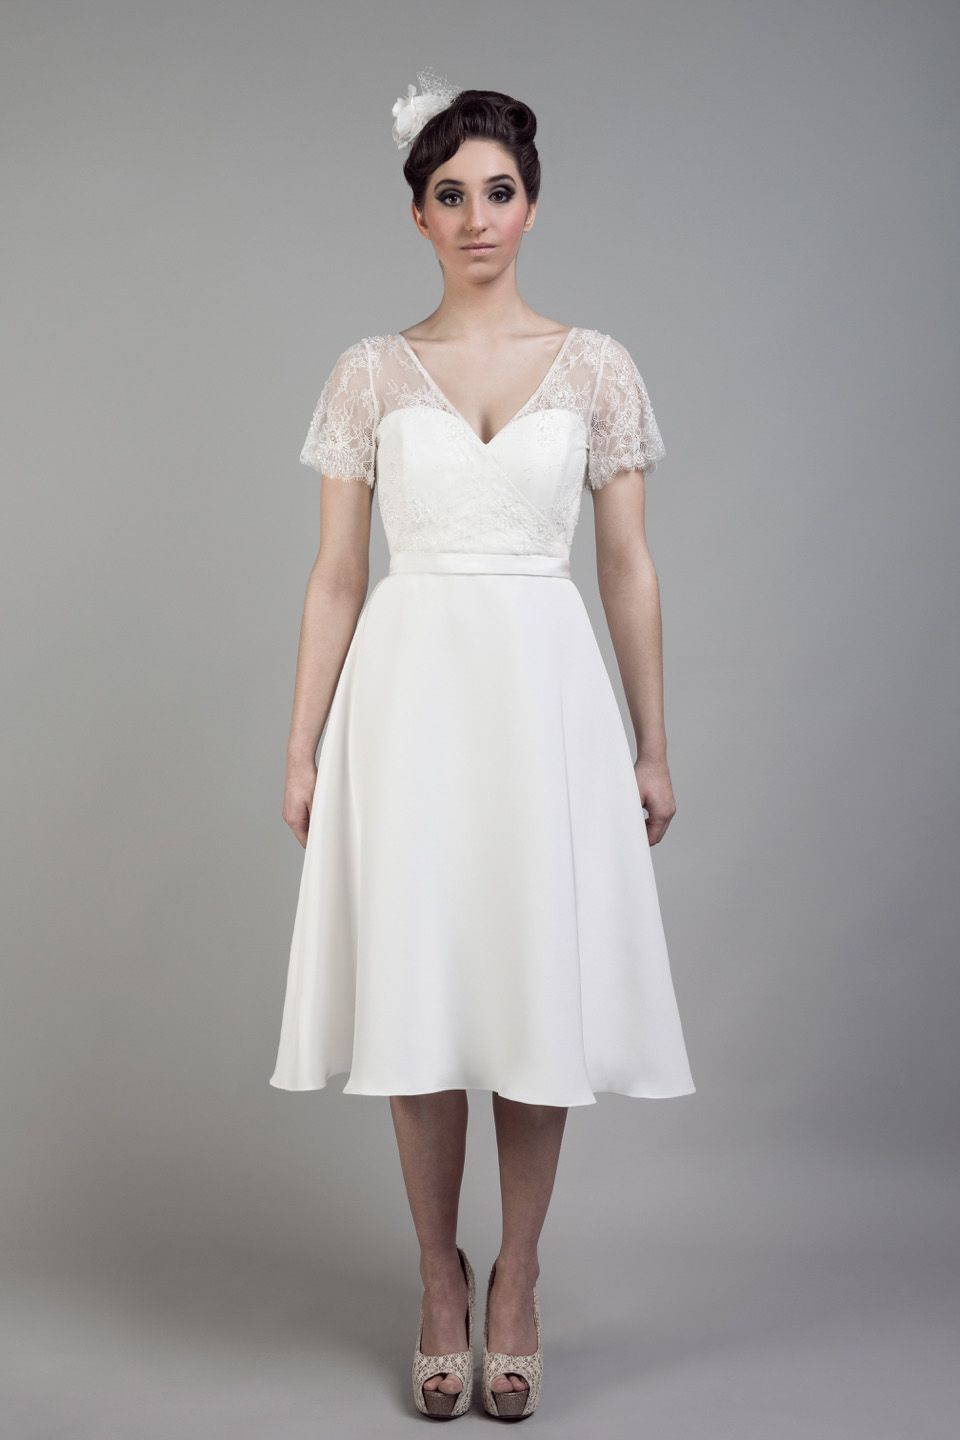 Adventure the new collection of short wedding dresses by tobi